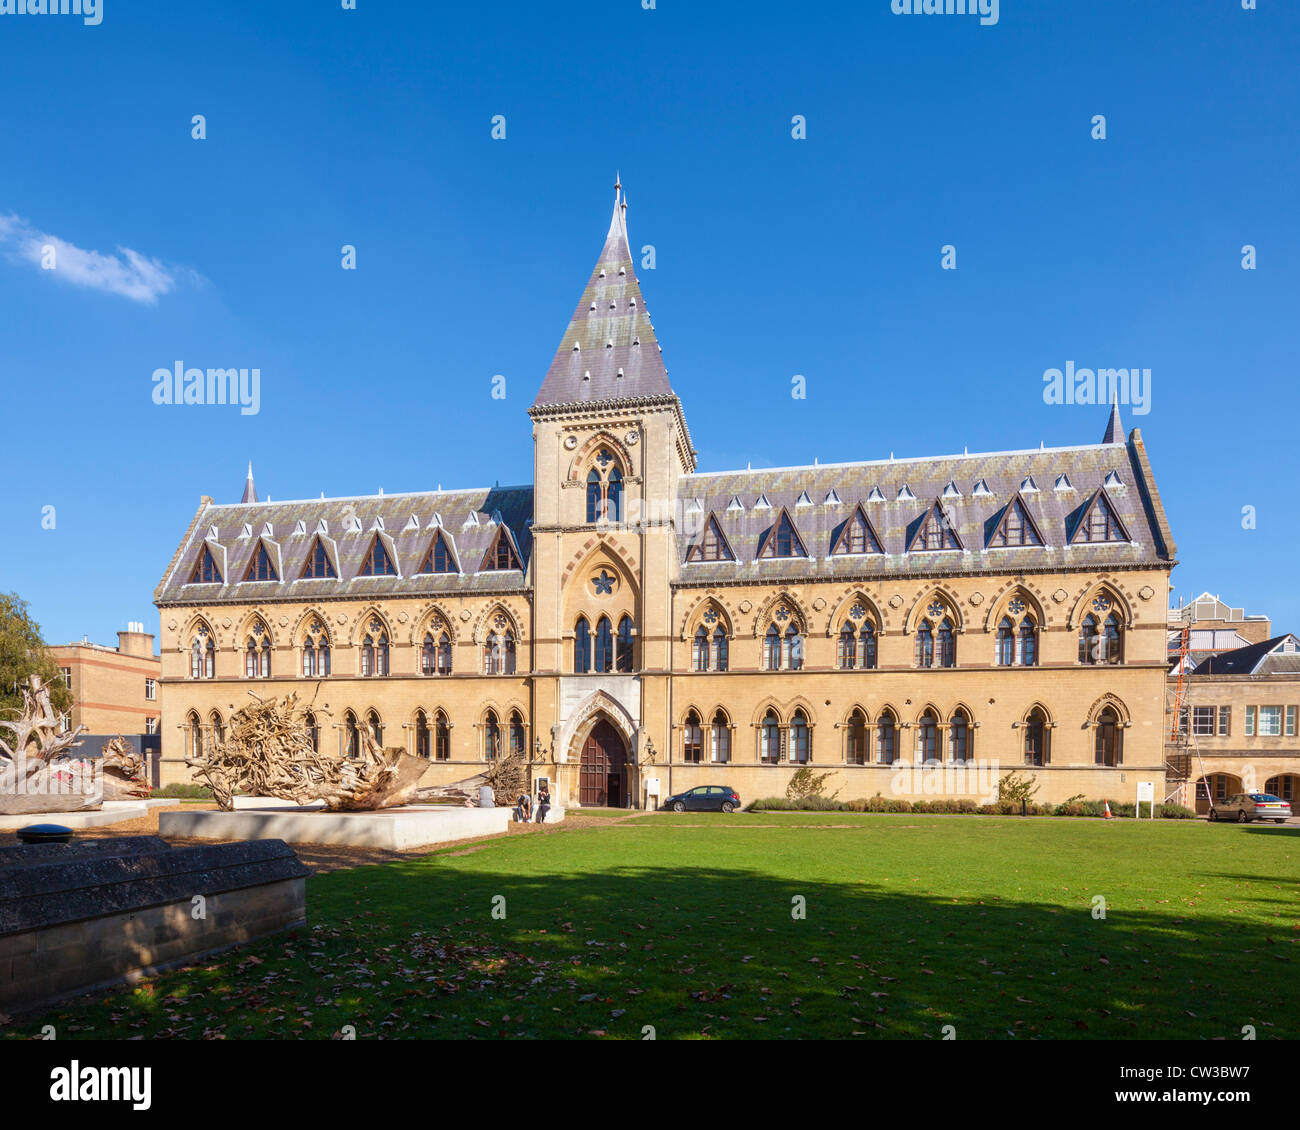 Oxford University Museum of Natural History - Stock Image